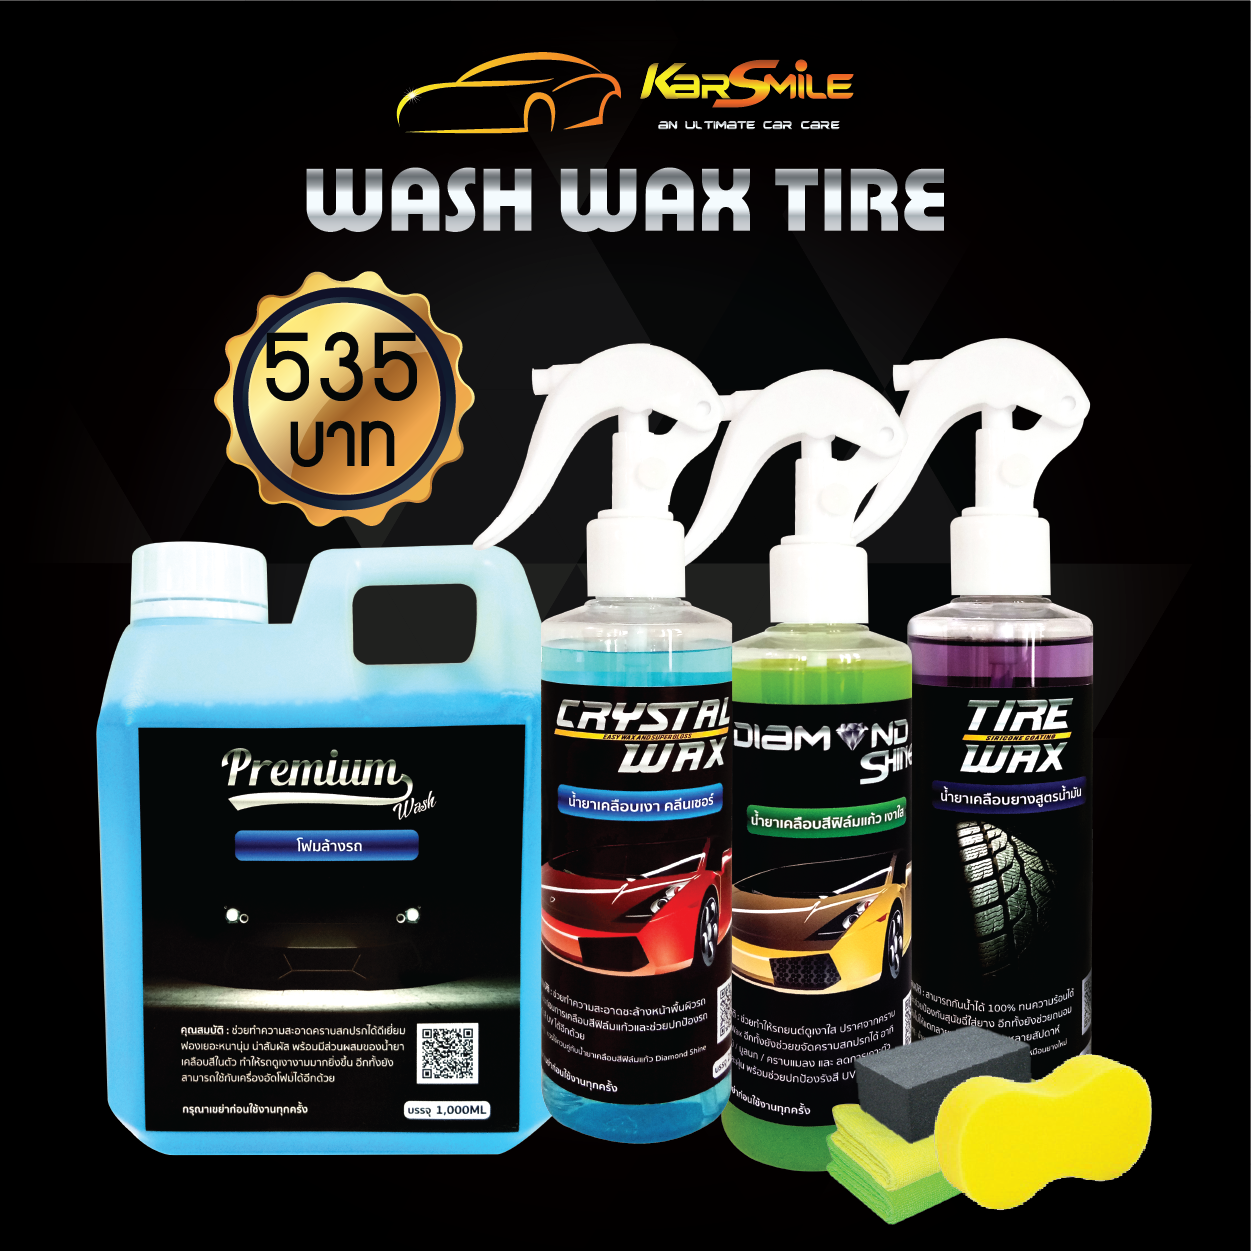 ชุด Wash Wax Tire